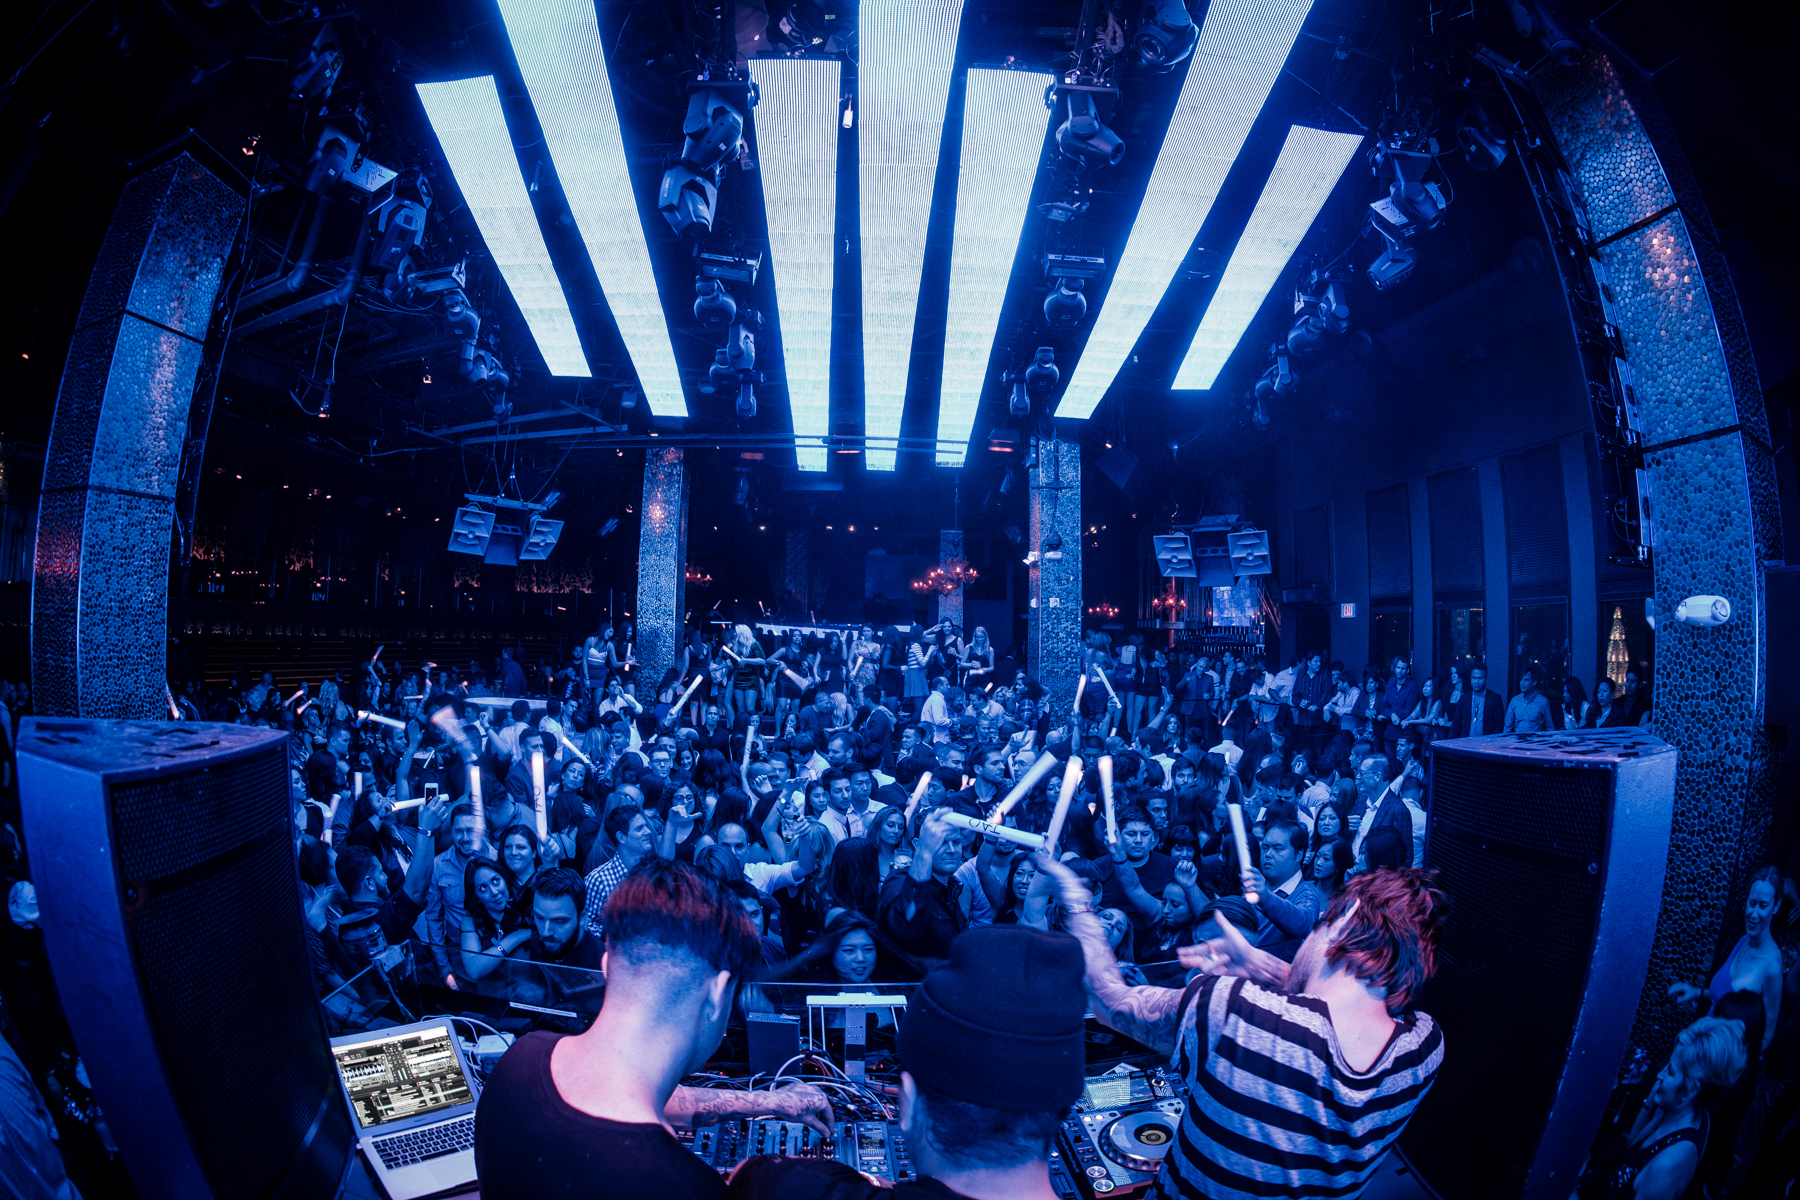 Breathe Carolina at Tao Nightclub